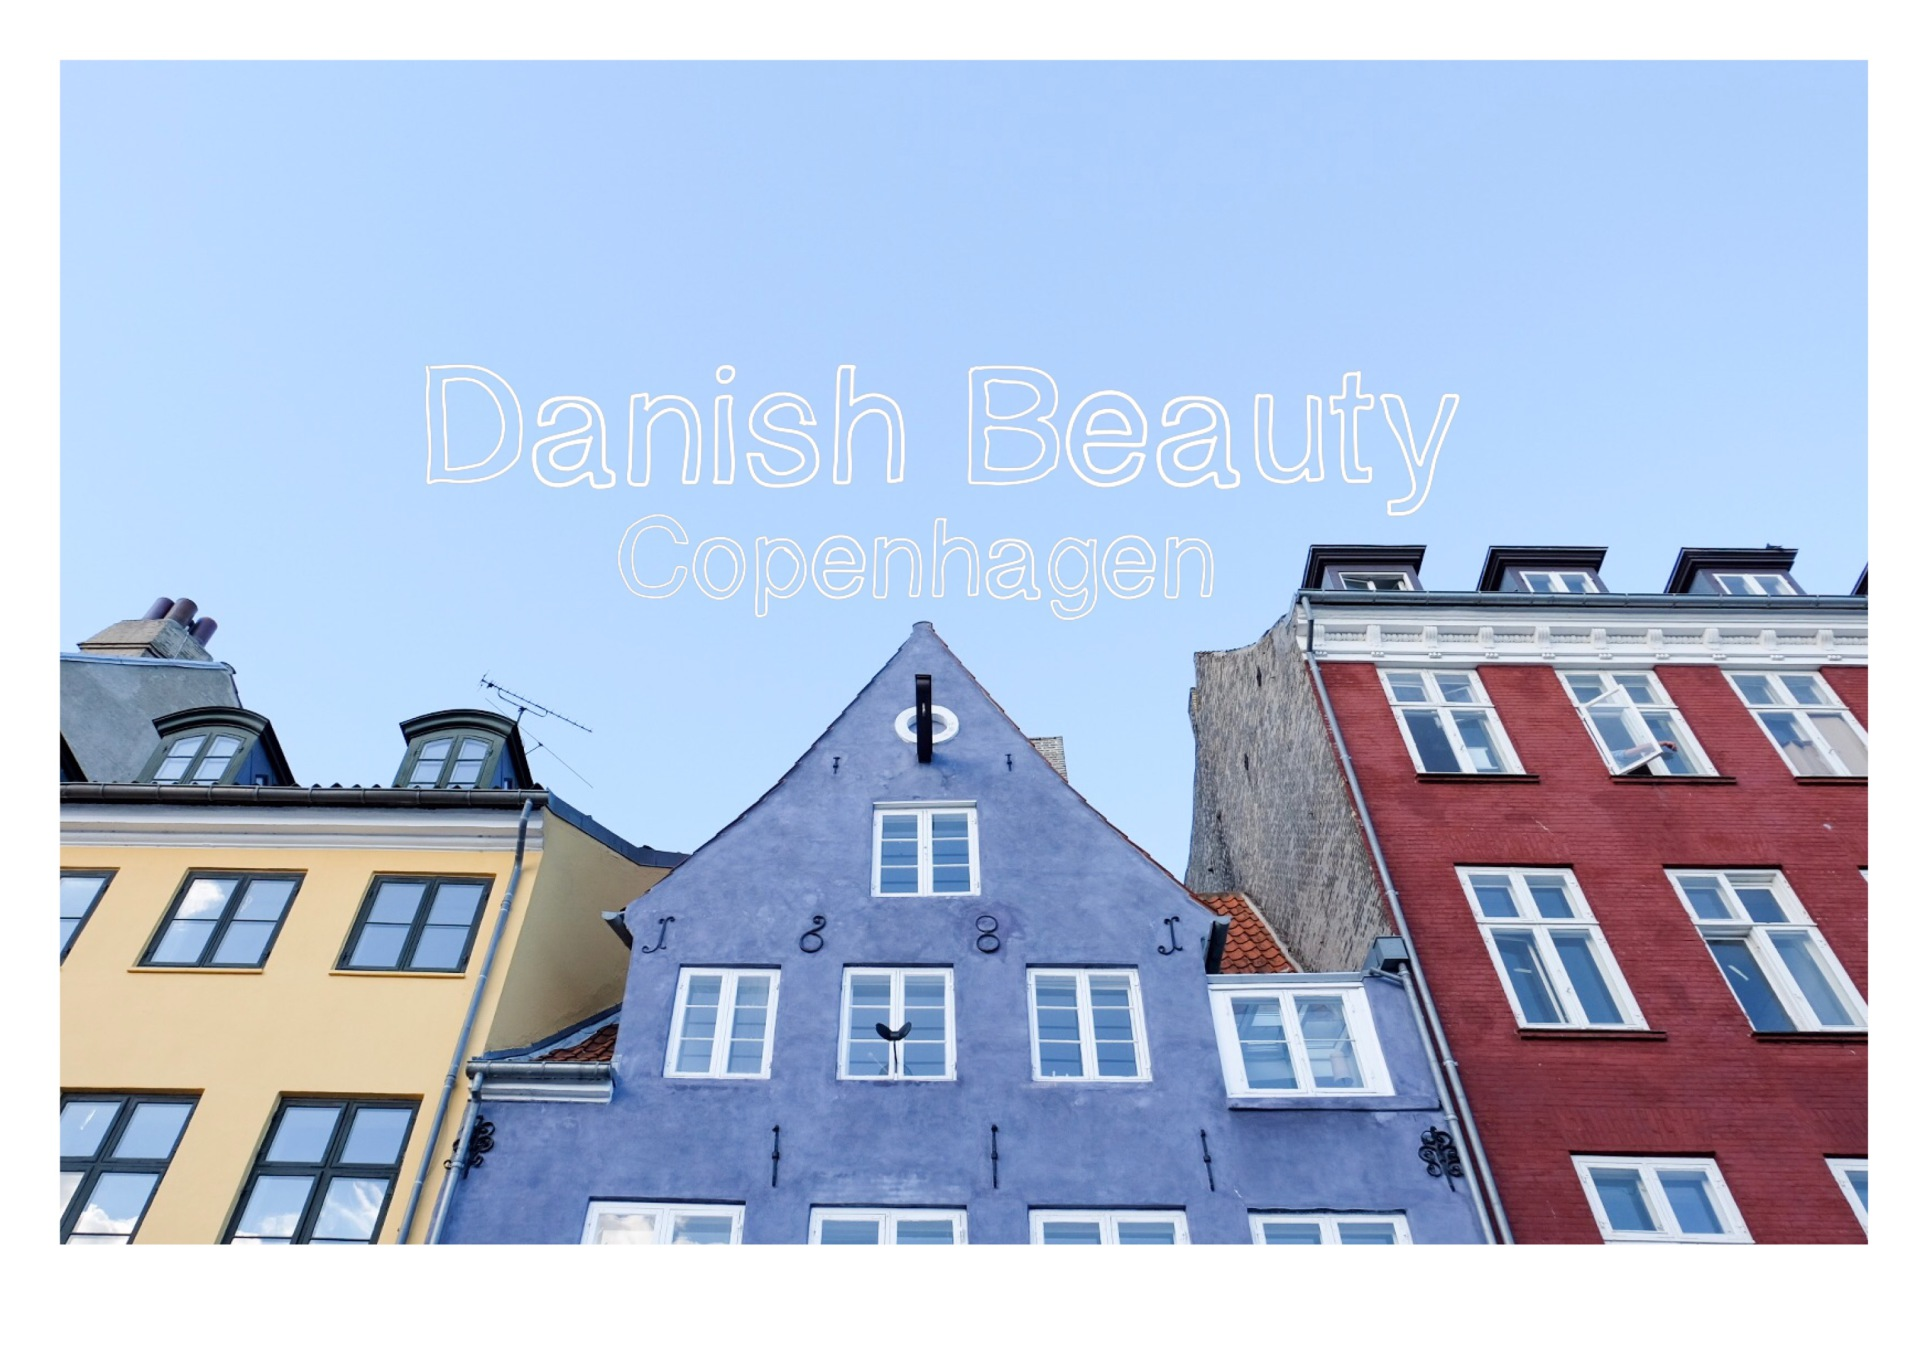 Danish Beauty - Copenhagen